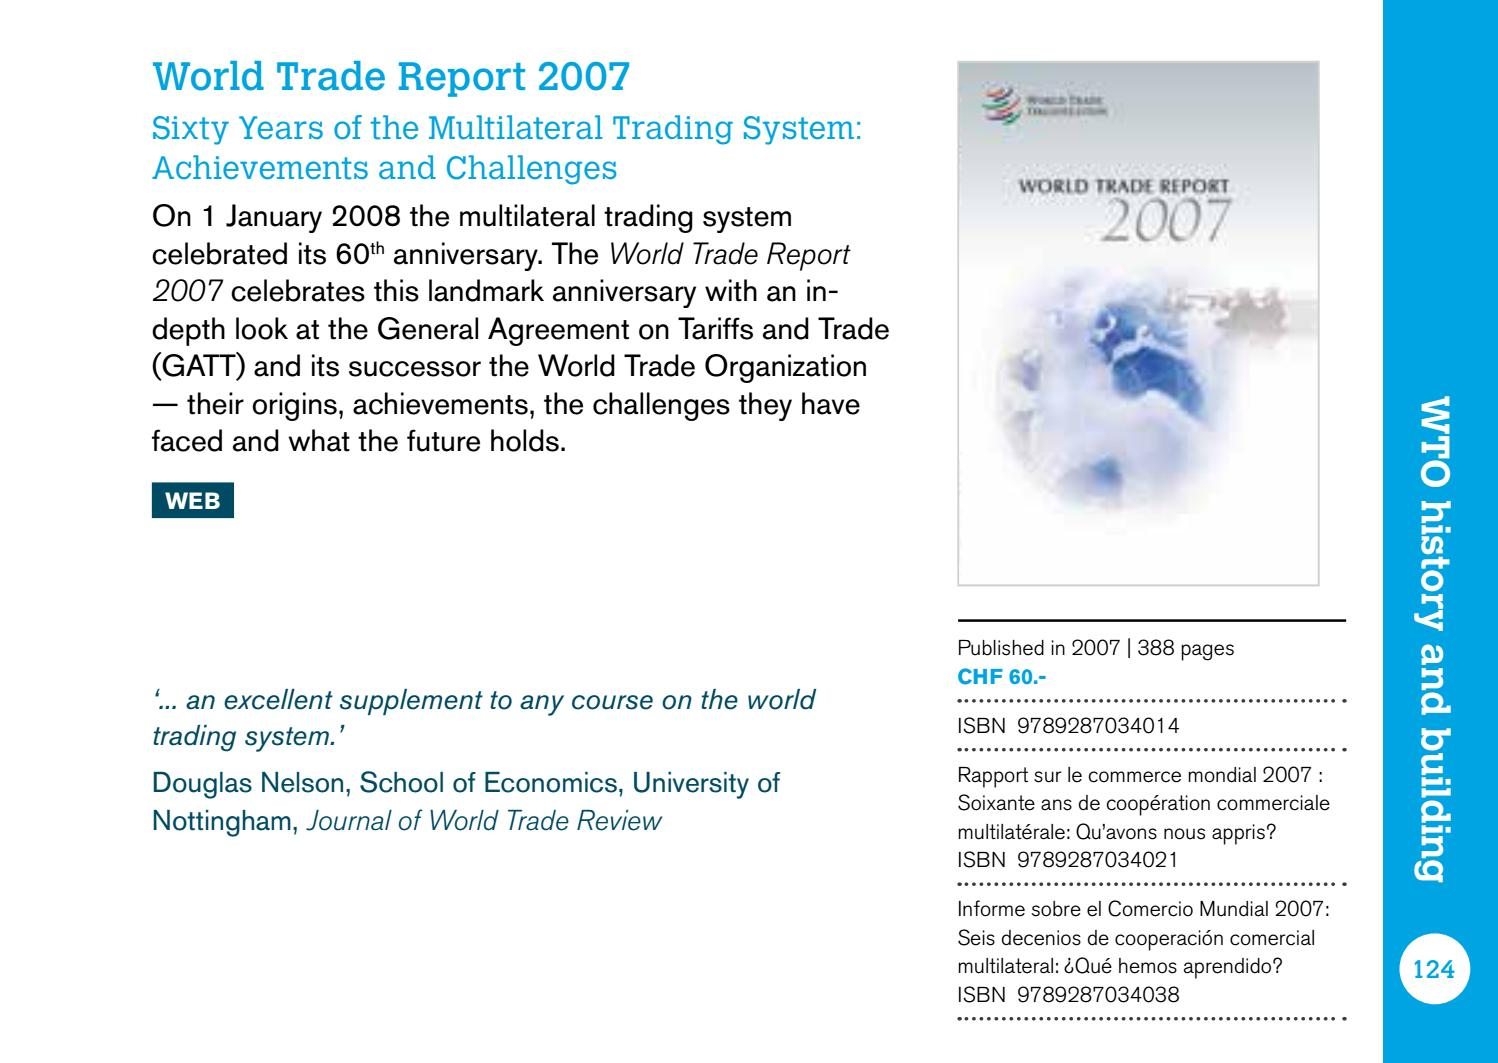 Wto Publications Catalogue 20162017 By World Trade Organization Issuu